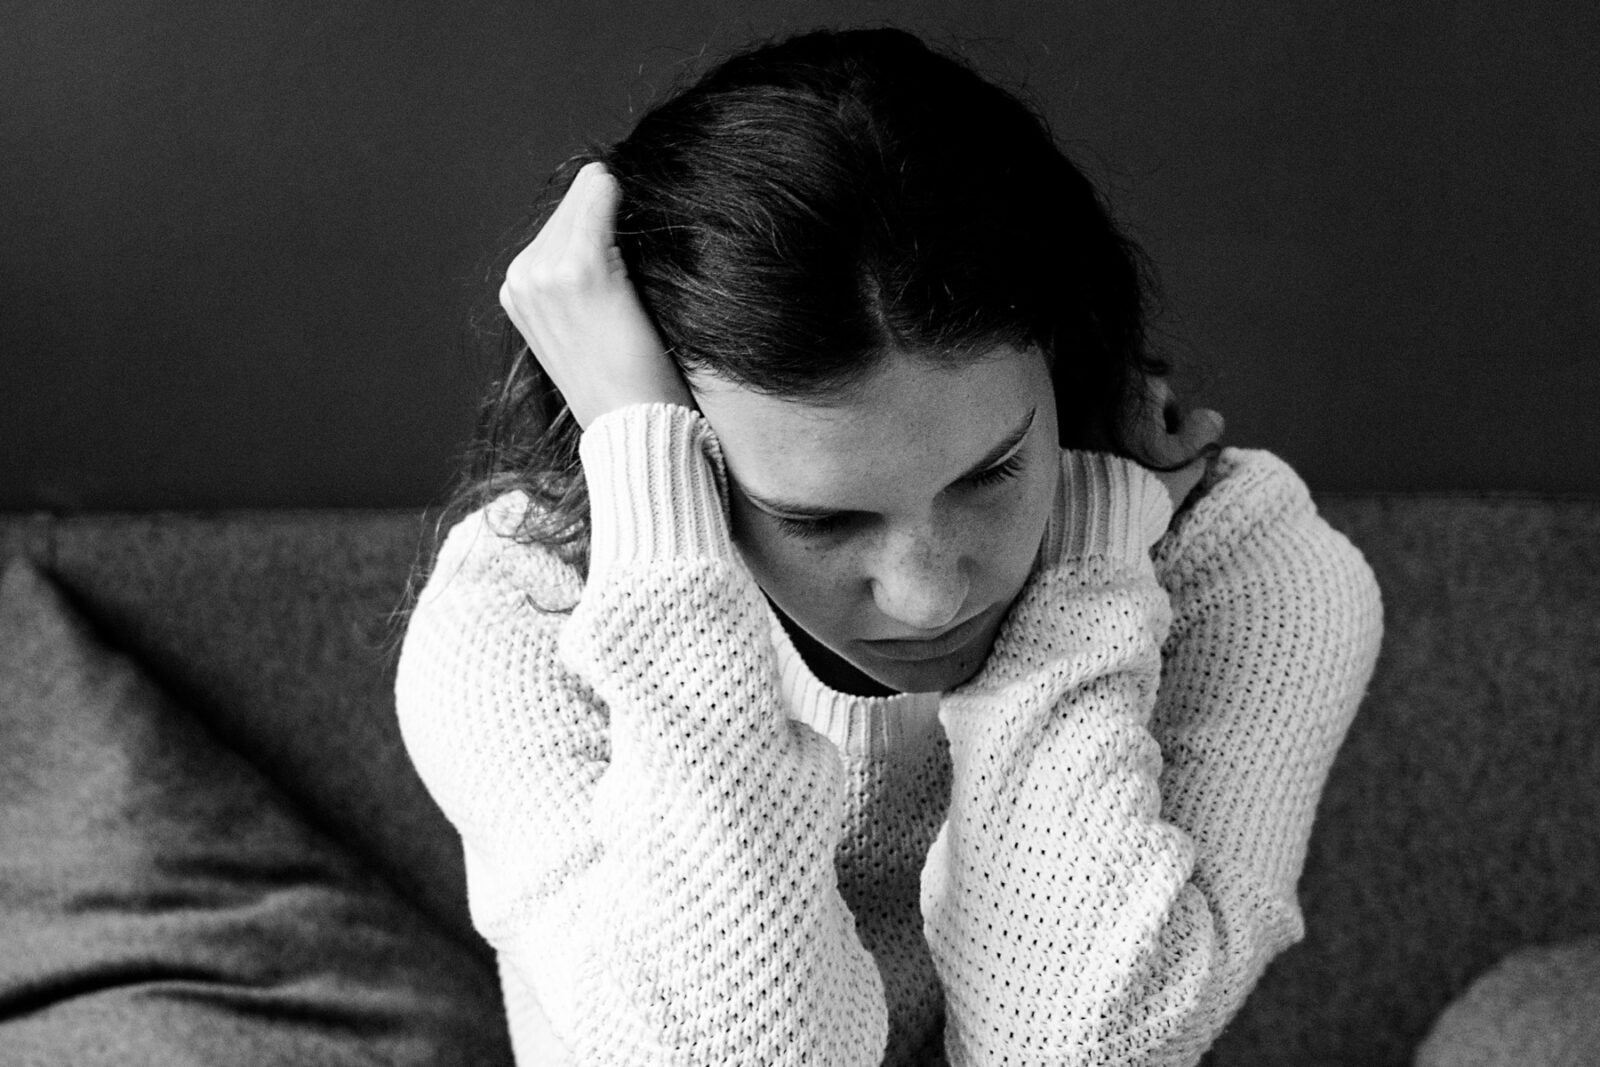 Young woman with anxiety